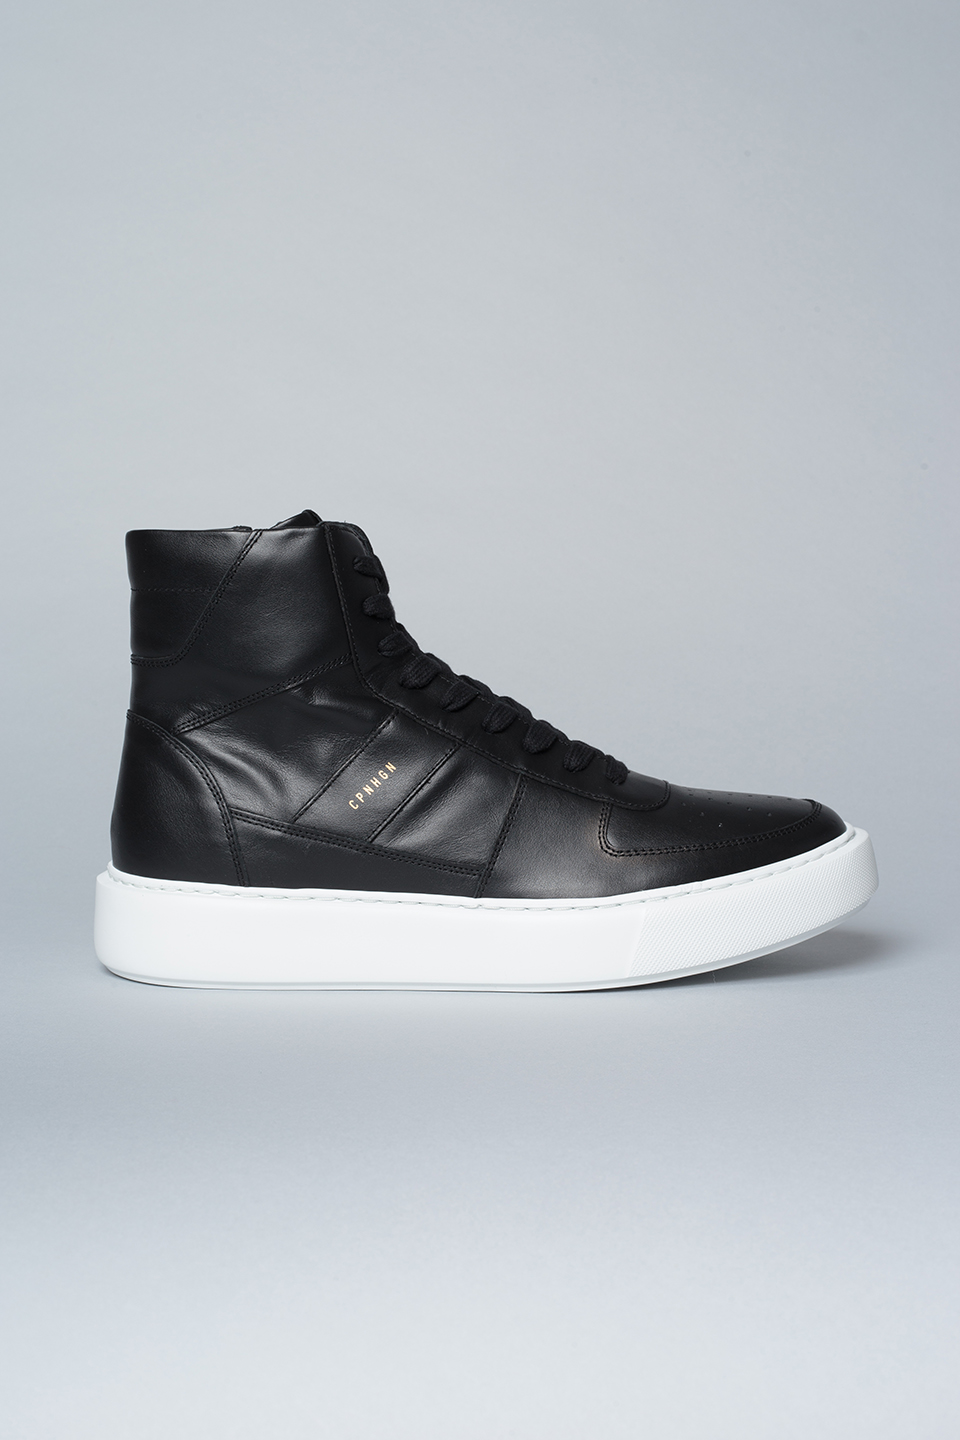 CPH153M vitello black - alternative 3